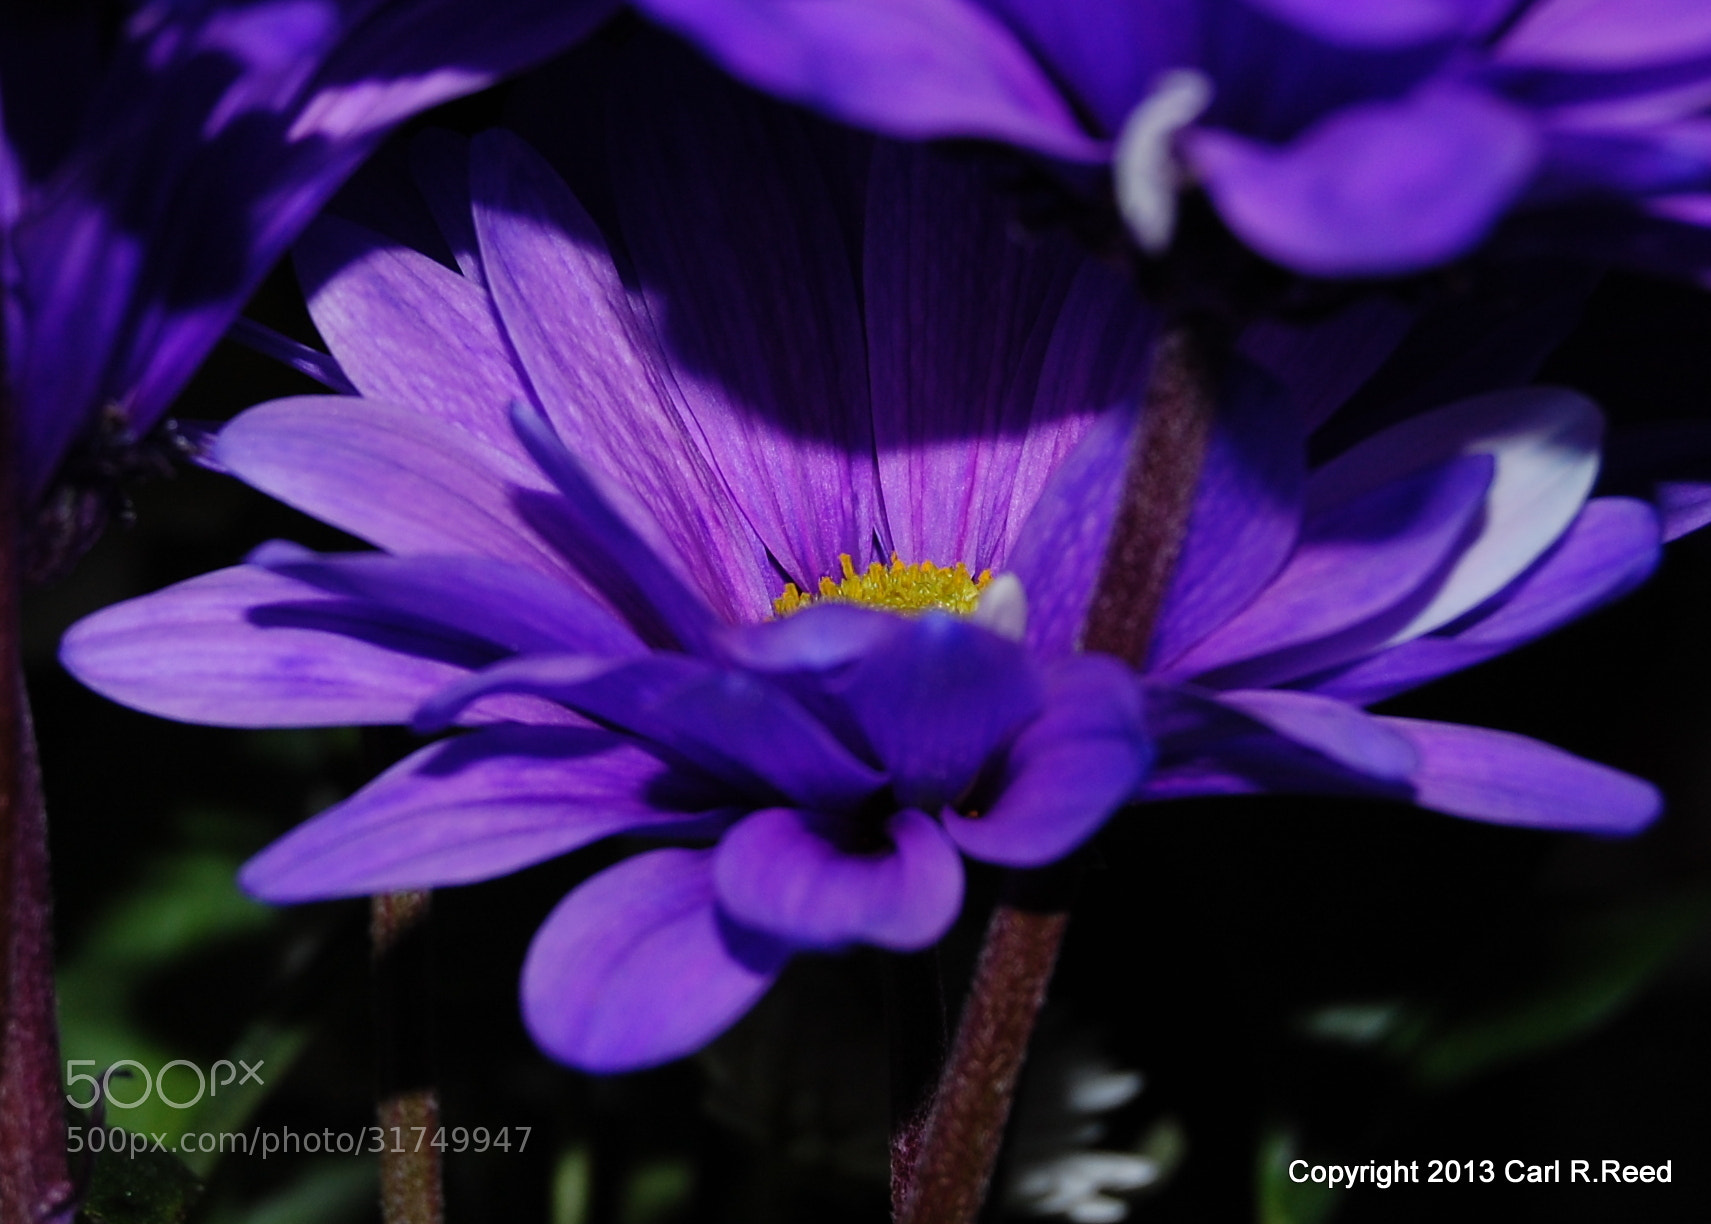 Photograph 4162-closeup flower by Carl Reed on 500px